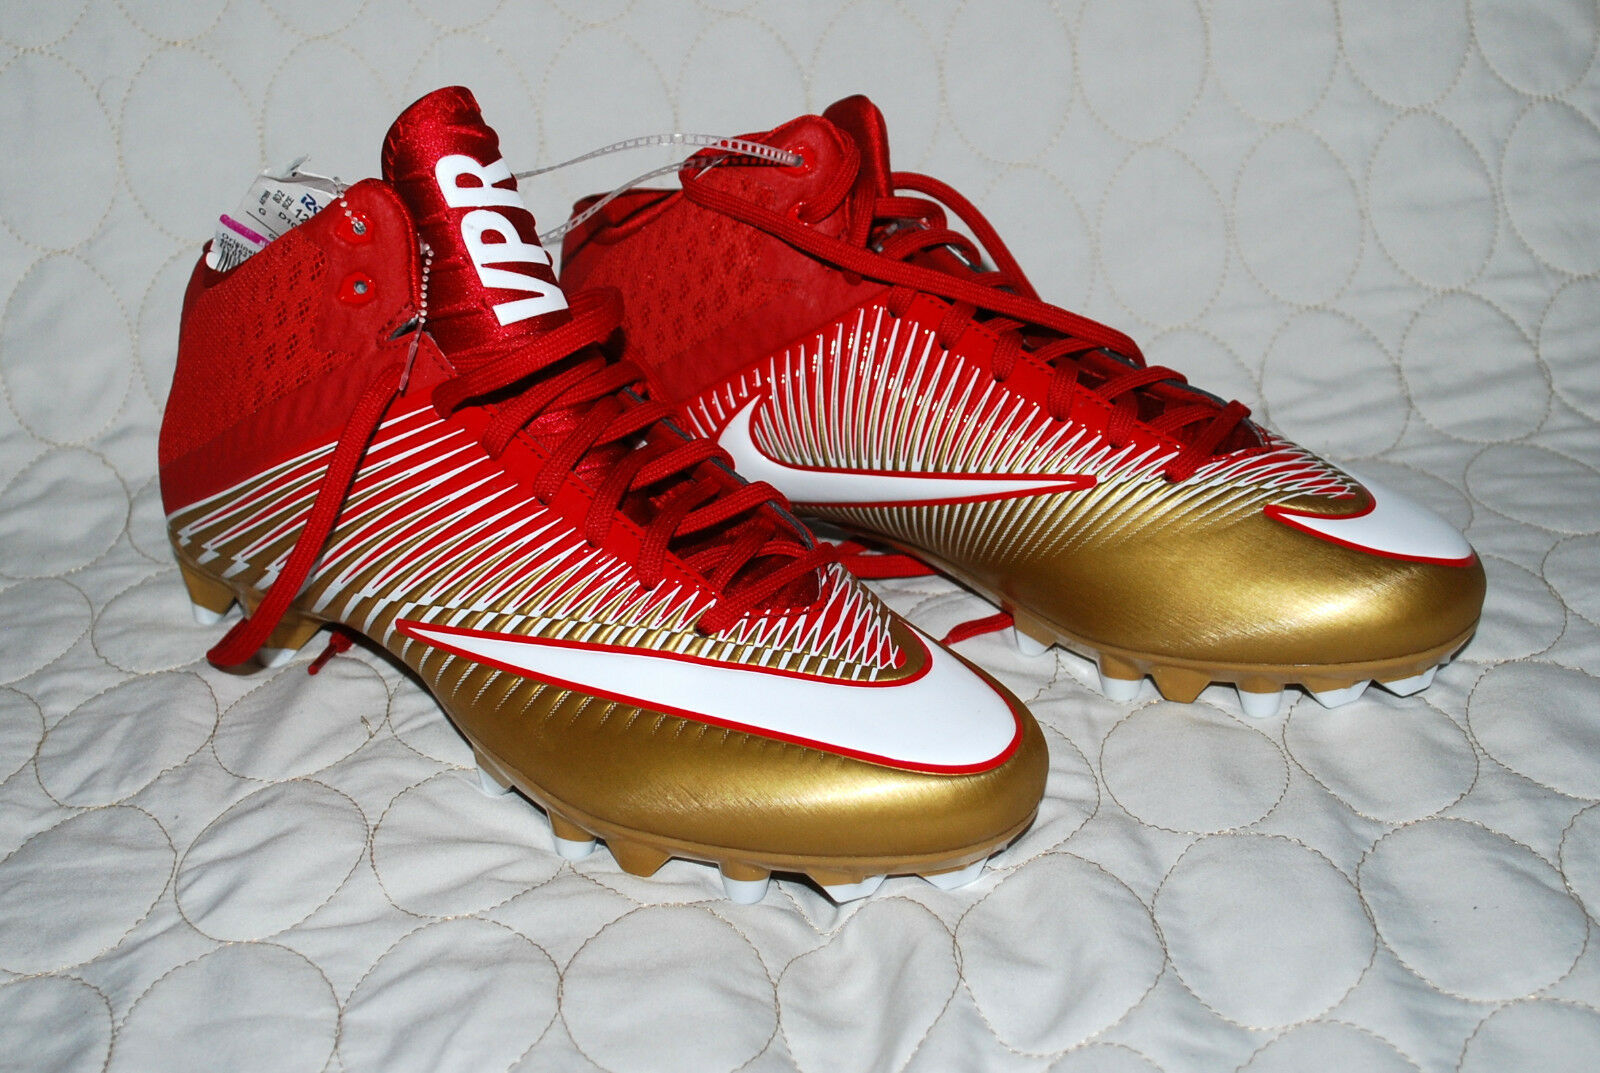 official photos 5eacb 8b2f6 Nike Football Cleats Vapor Speed 2 TD Mid Red Gold Mens Size 12 New. Fast  Ship. for sale online   eBay